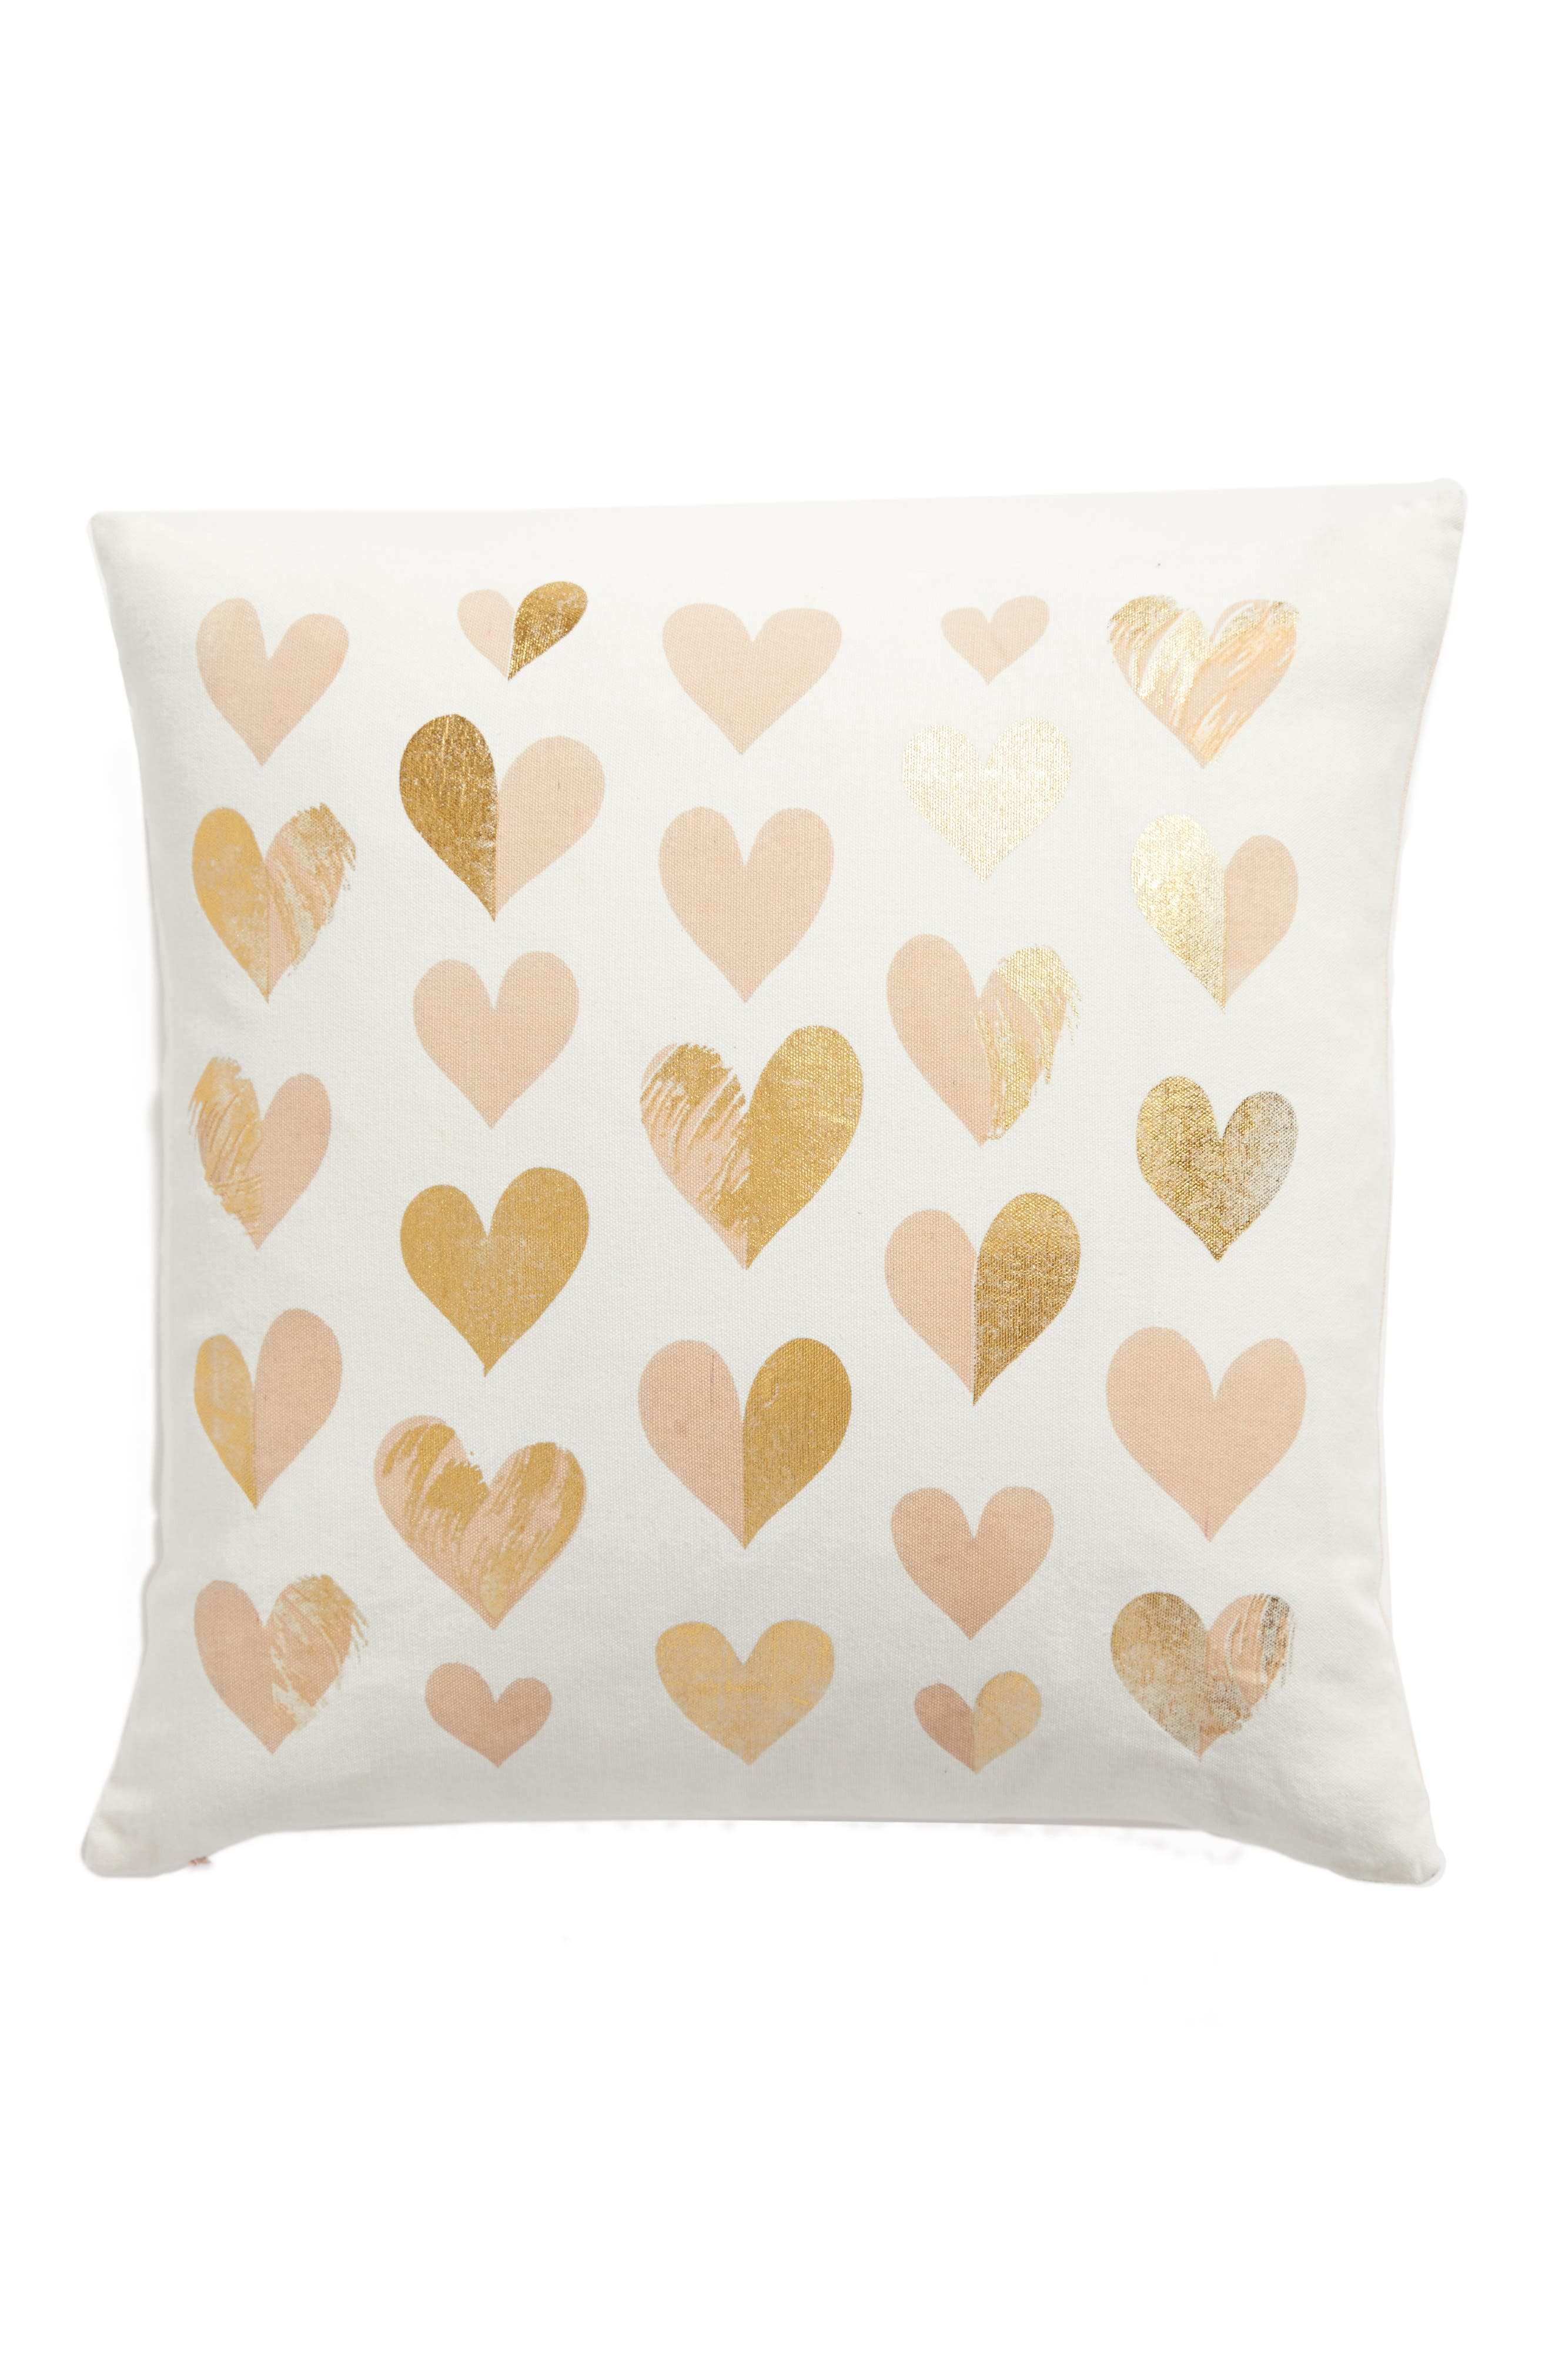 Nordstrom at Home Lots of Love Accent Pillow